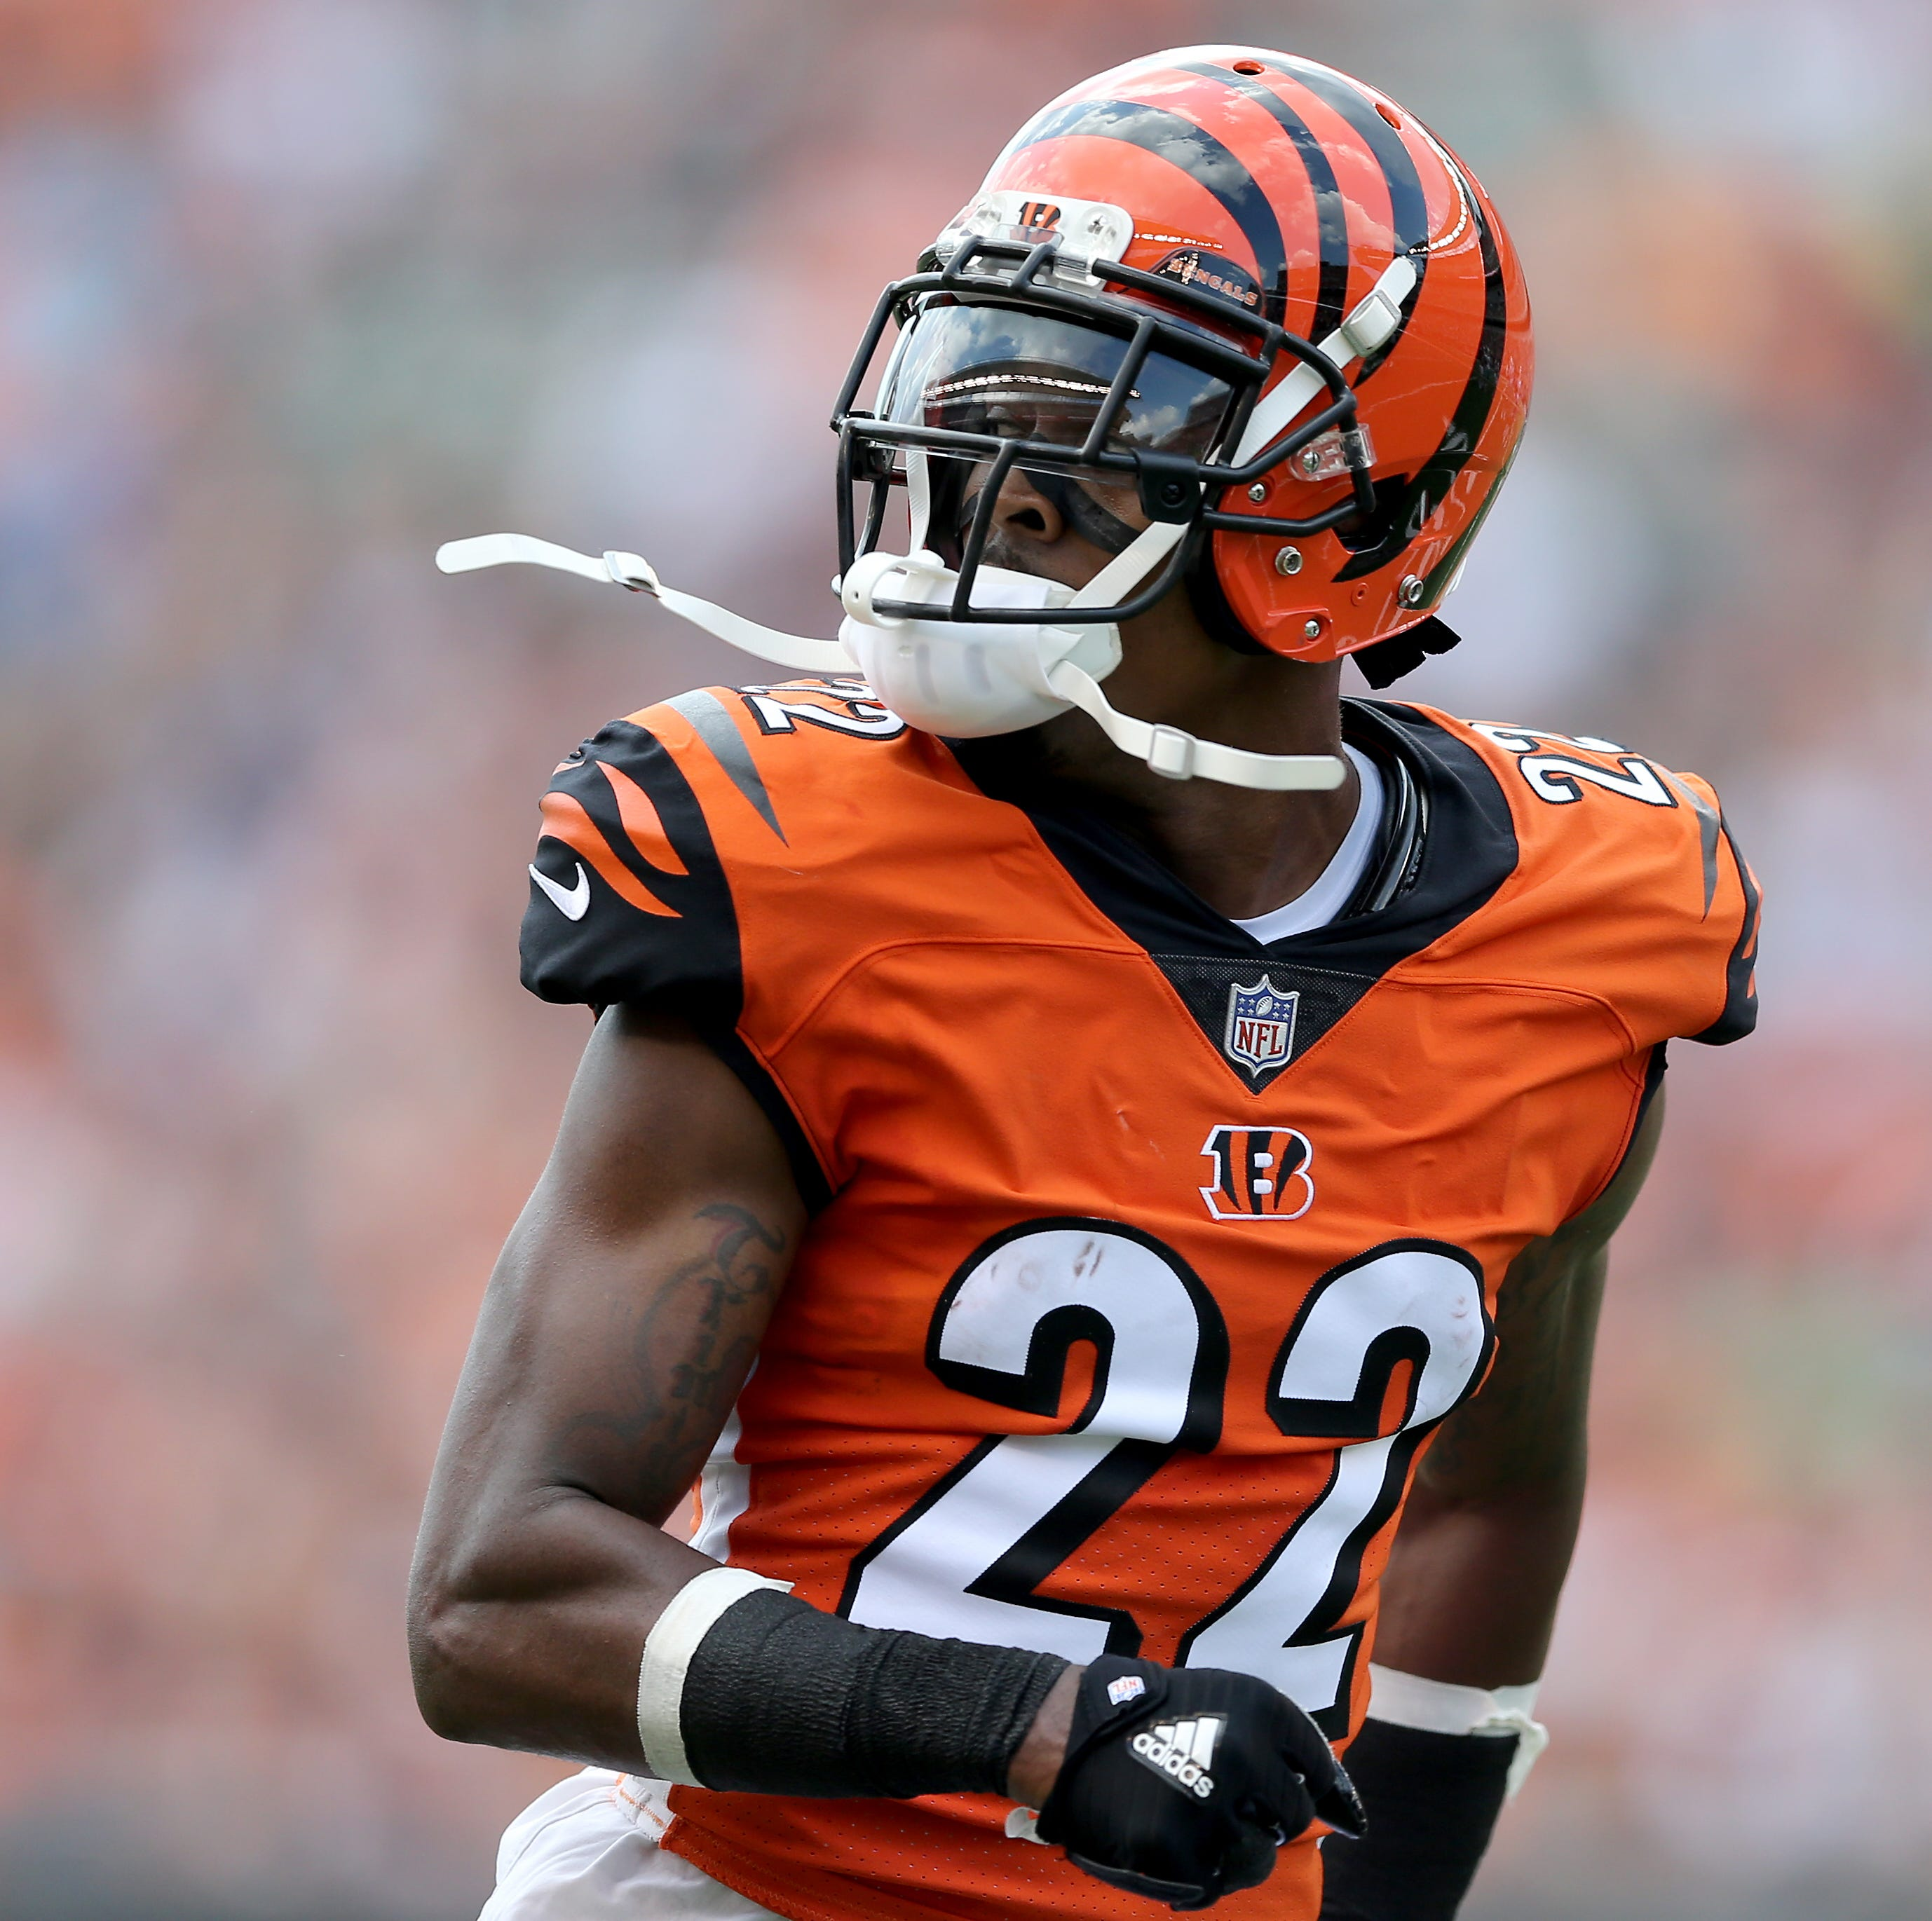 Cincinnati Bengals notes: William Jackson contract, John Ross status, Carl Lawson recovery